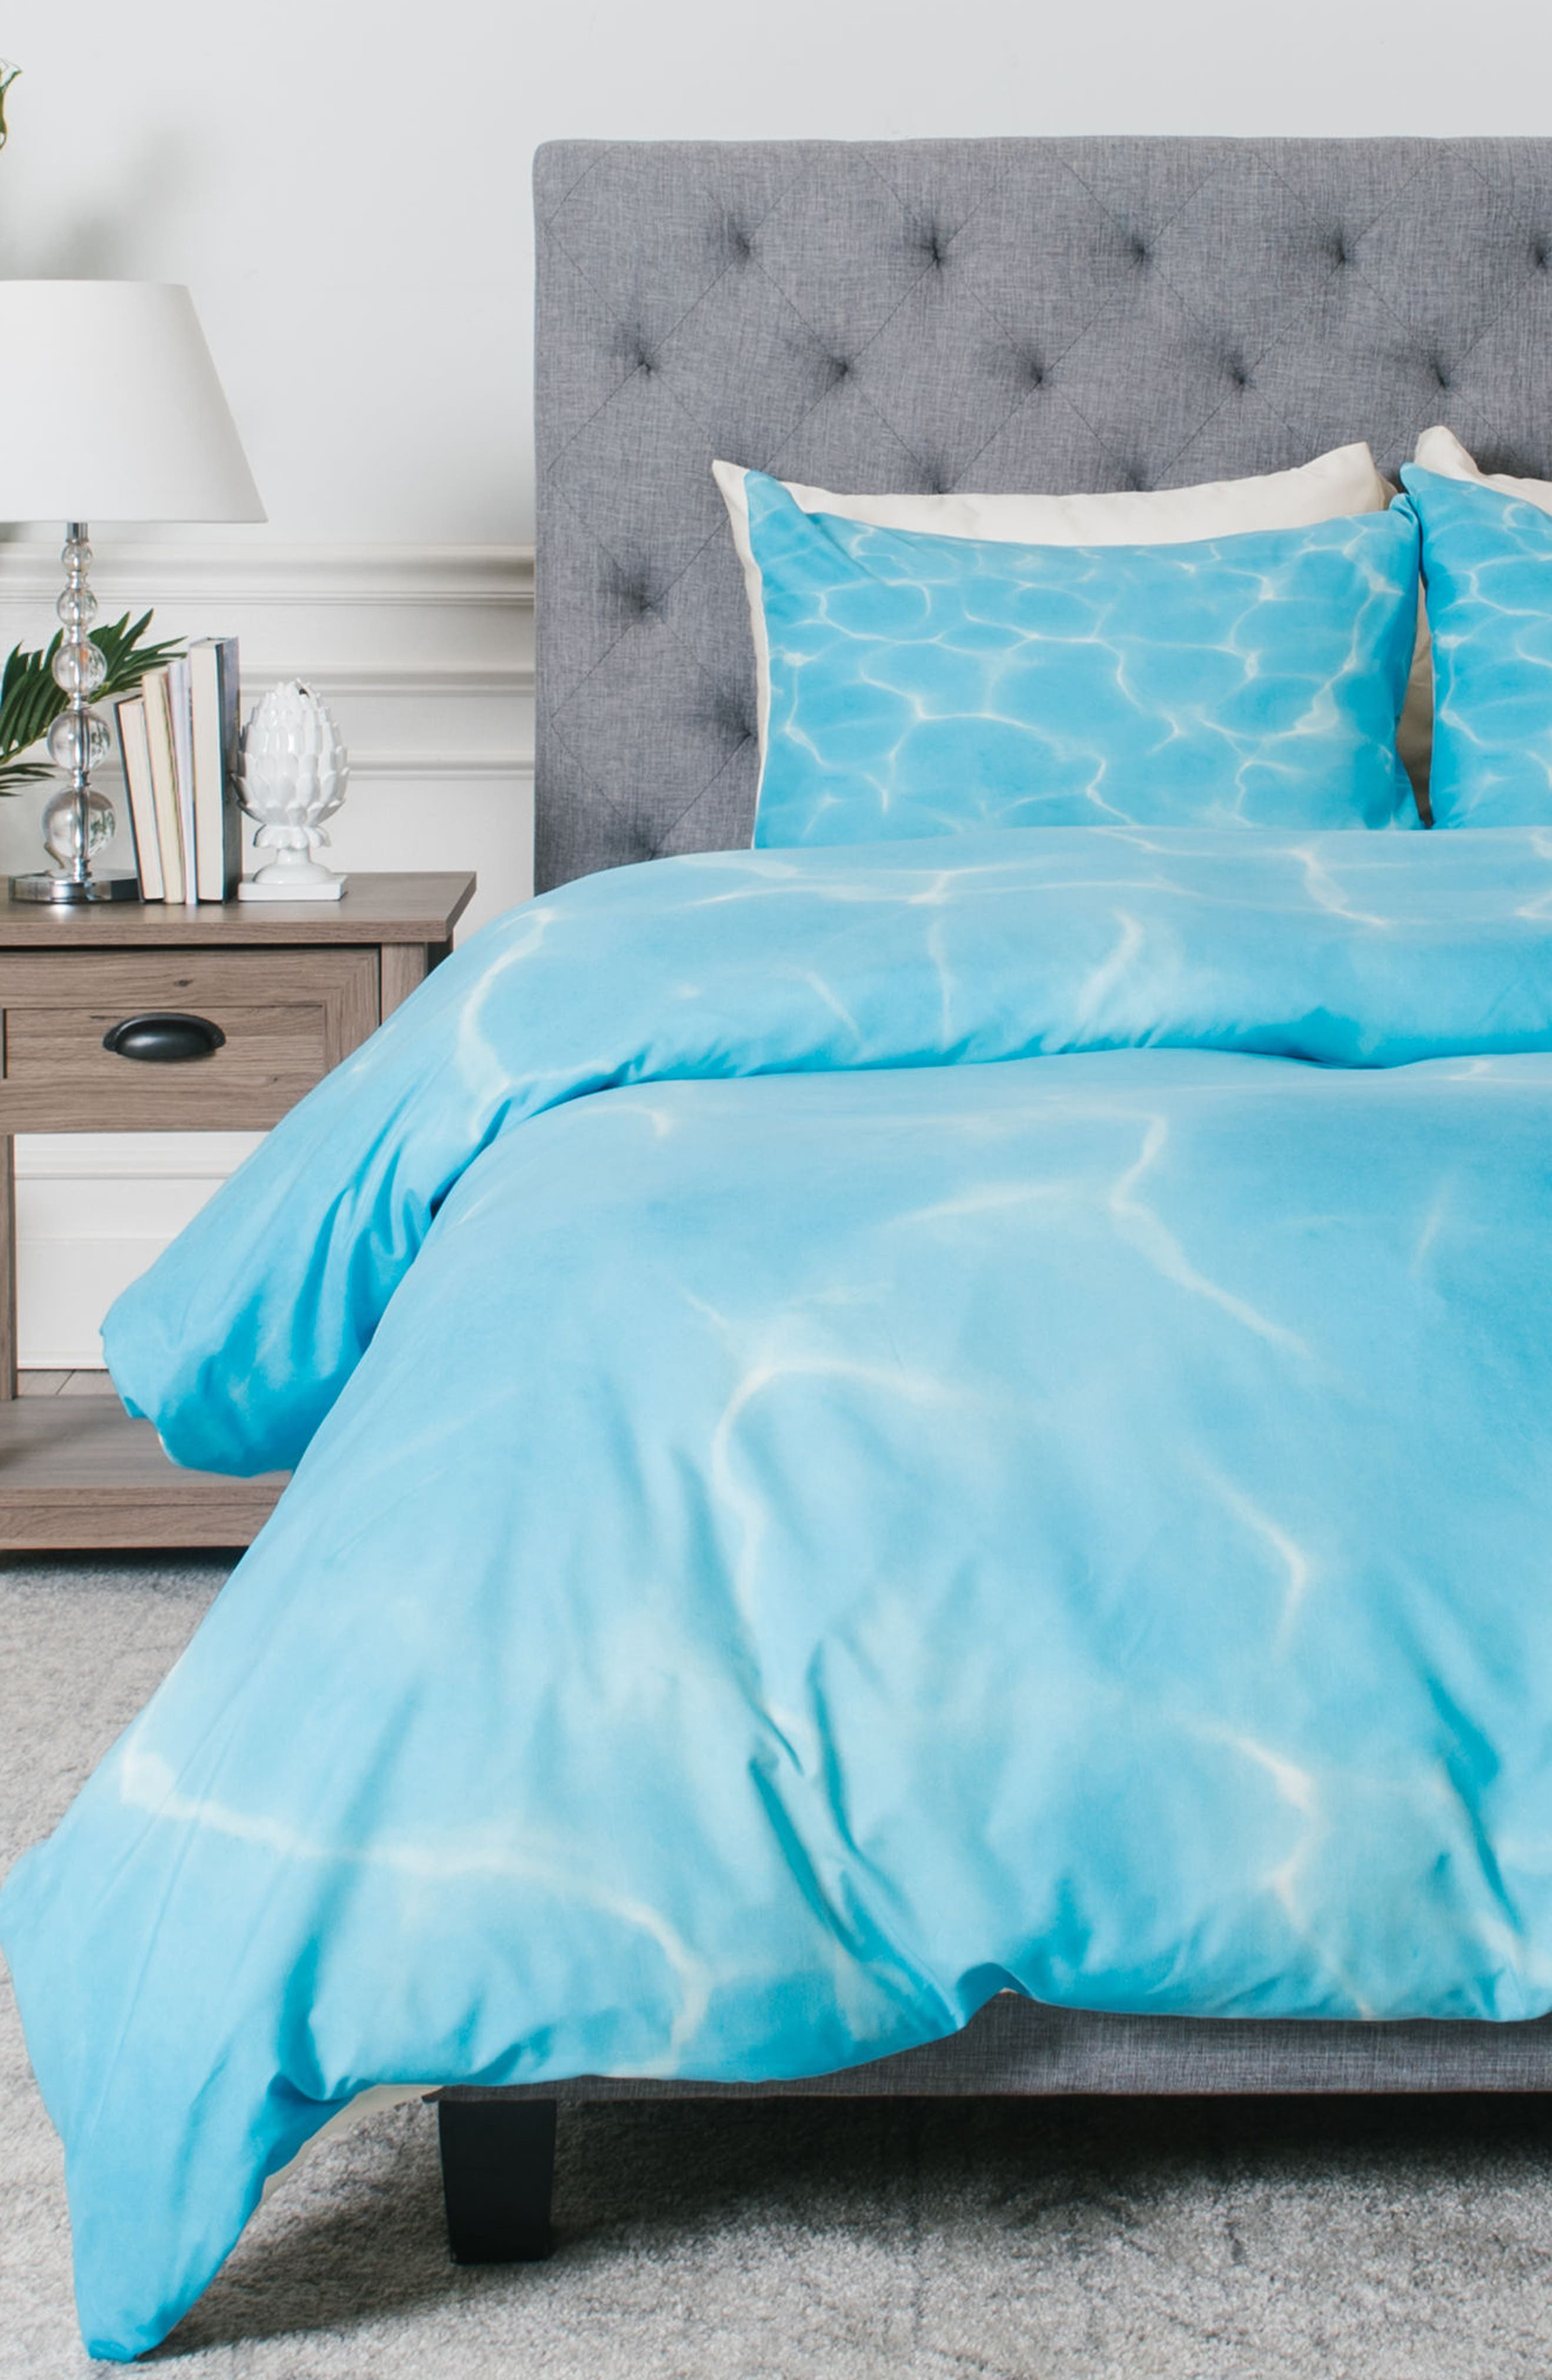 DENY Designs Del Rey Duvet Cover & Sham Set